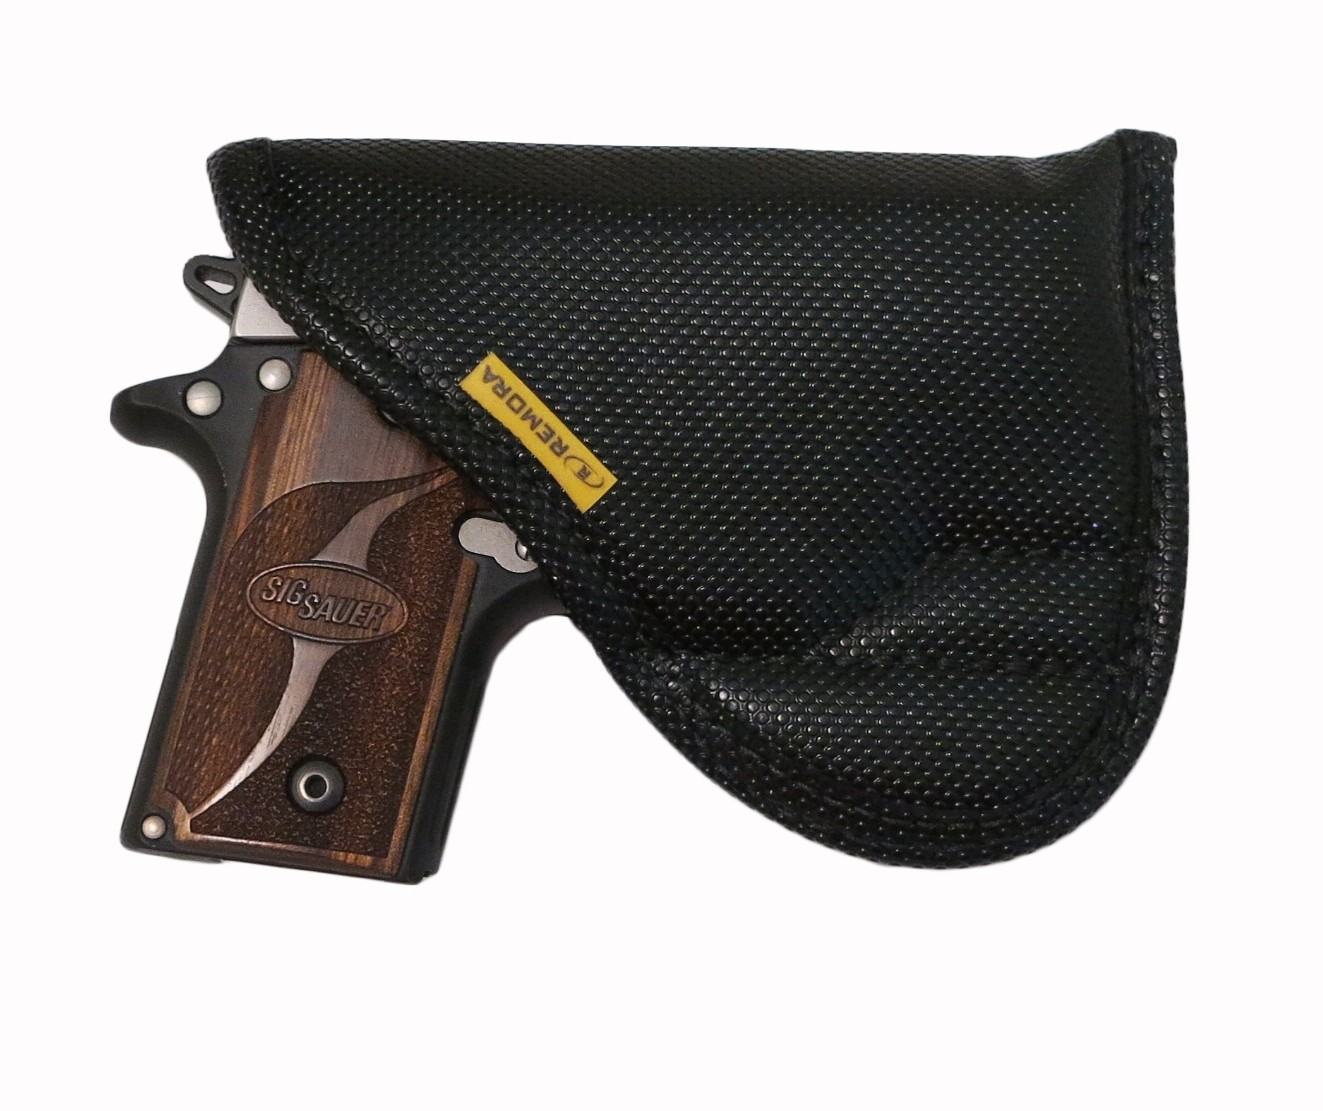 Inside the Waistband / Pocket holster is ambidextrous and features our non slip material that allows for a no clip design.